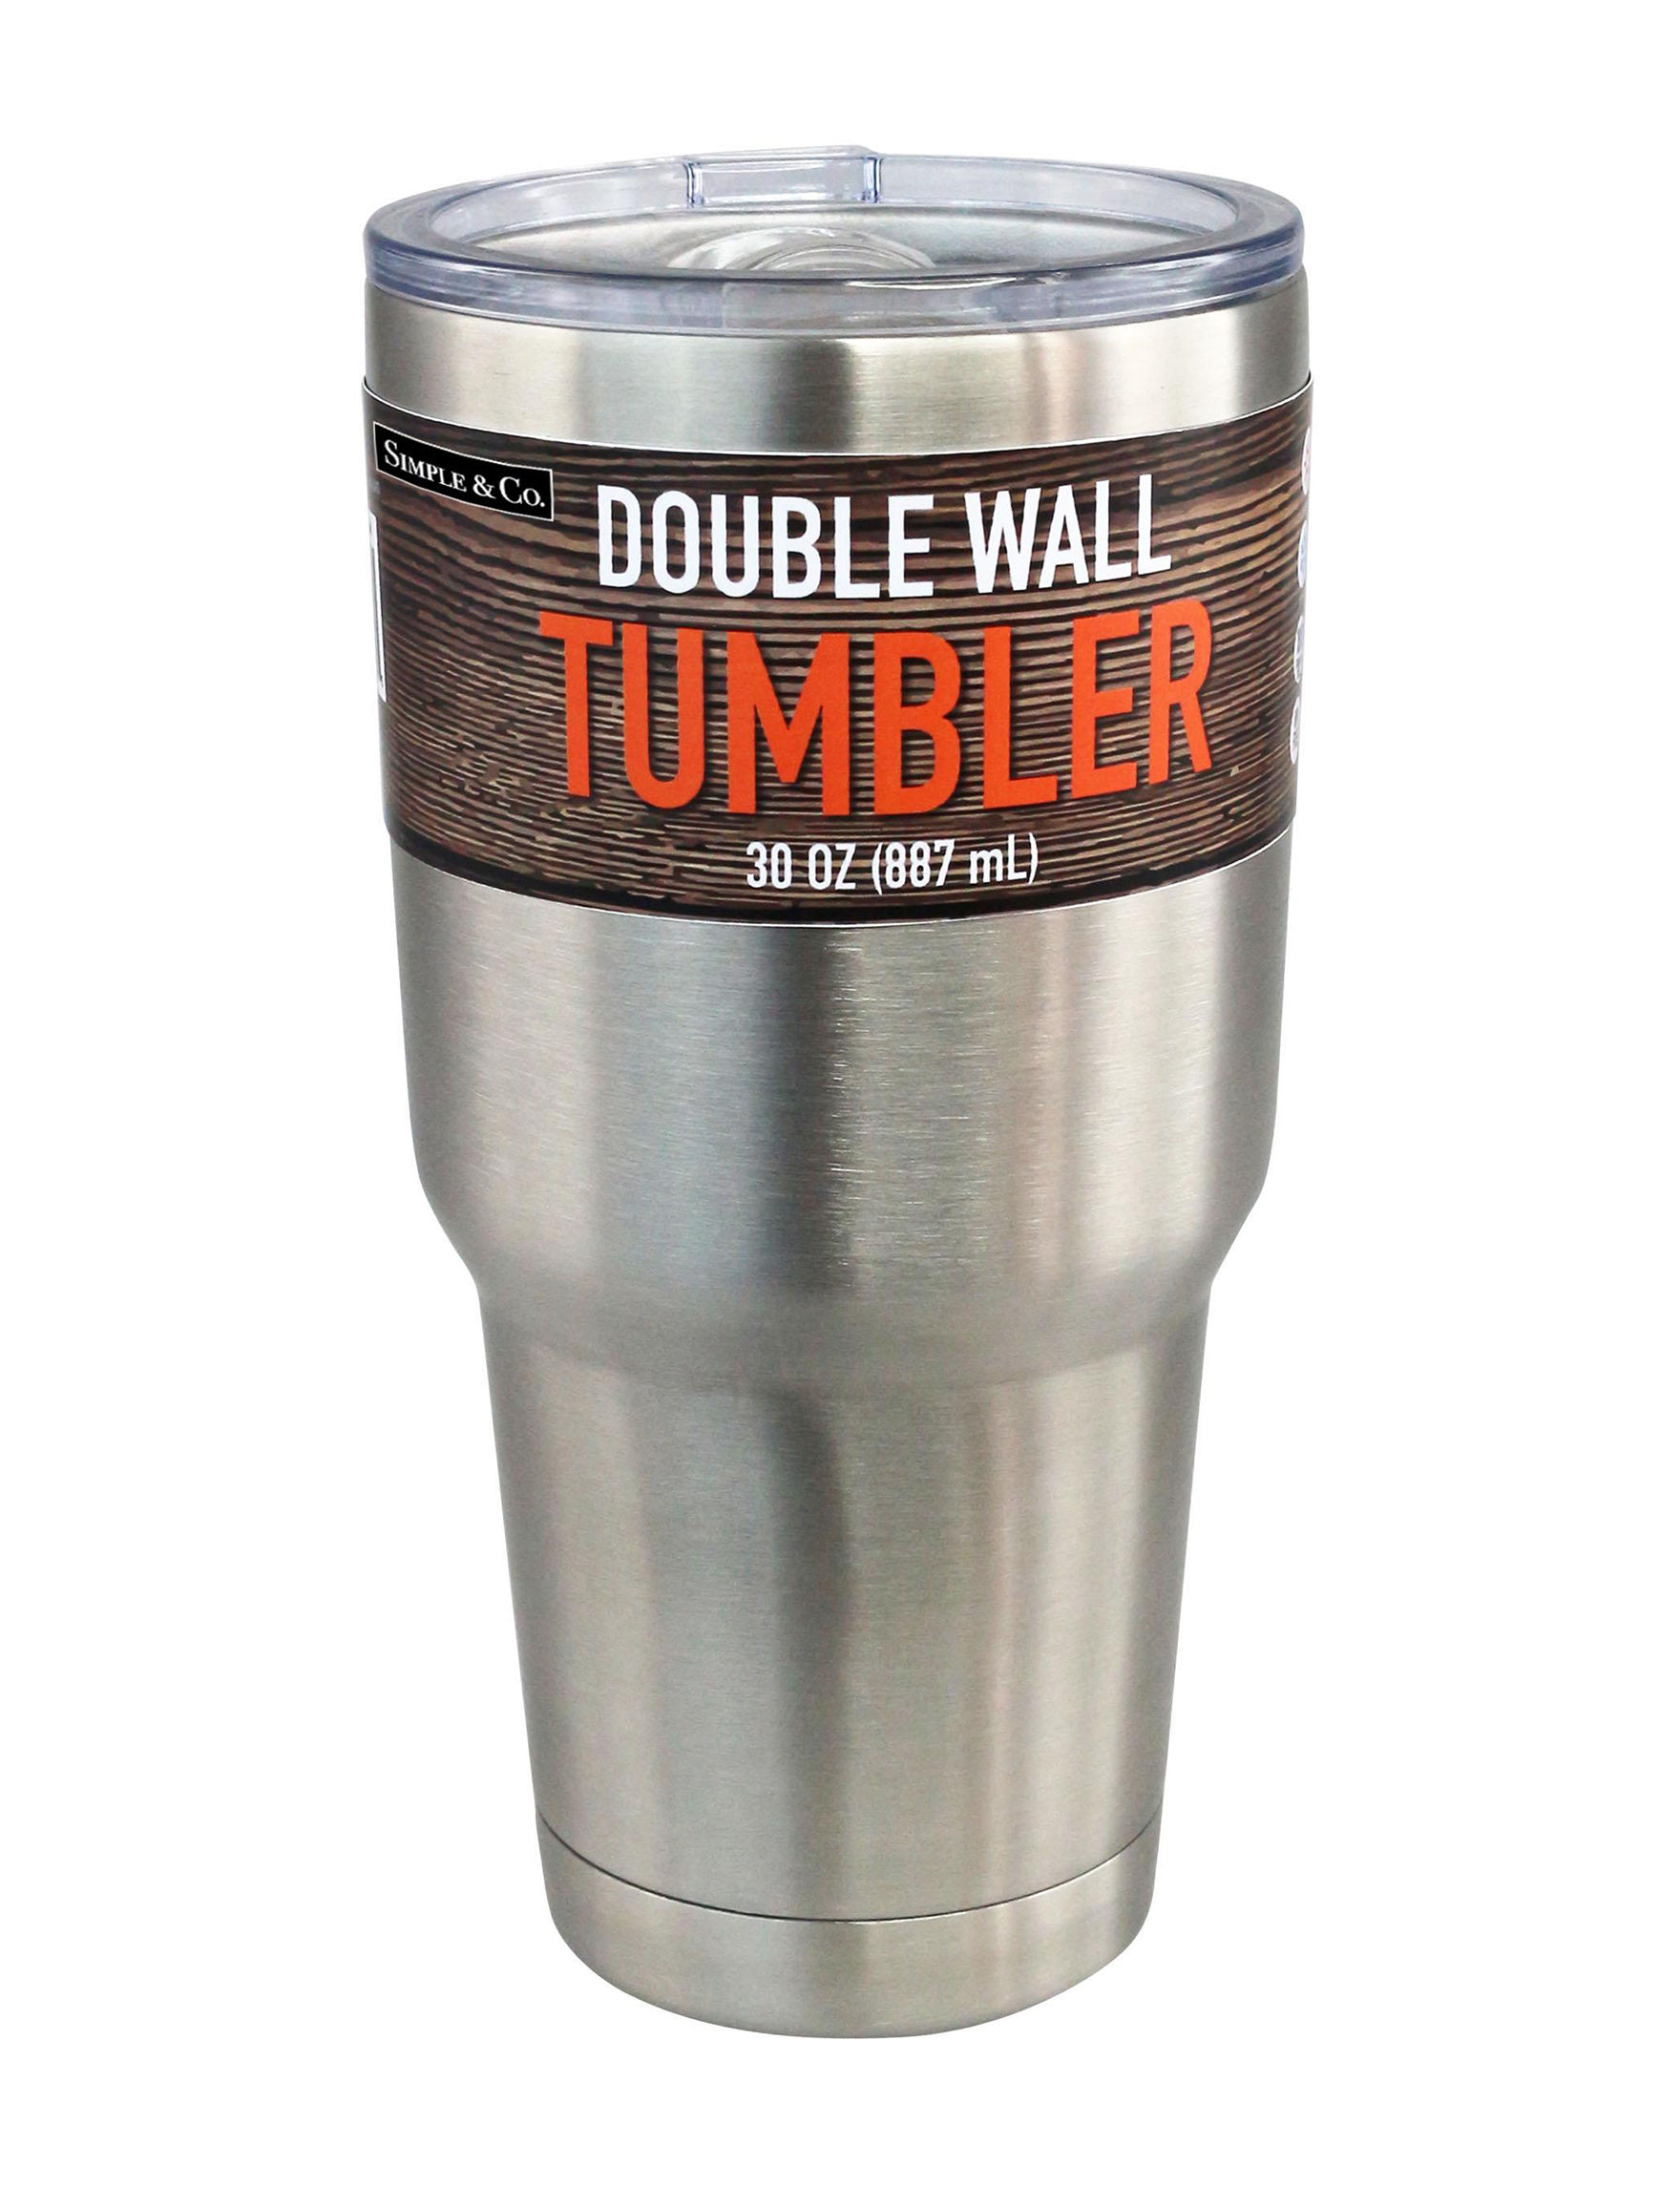 Grand Innovation Silver Tumblers Drinkware